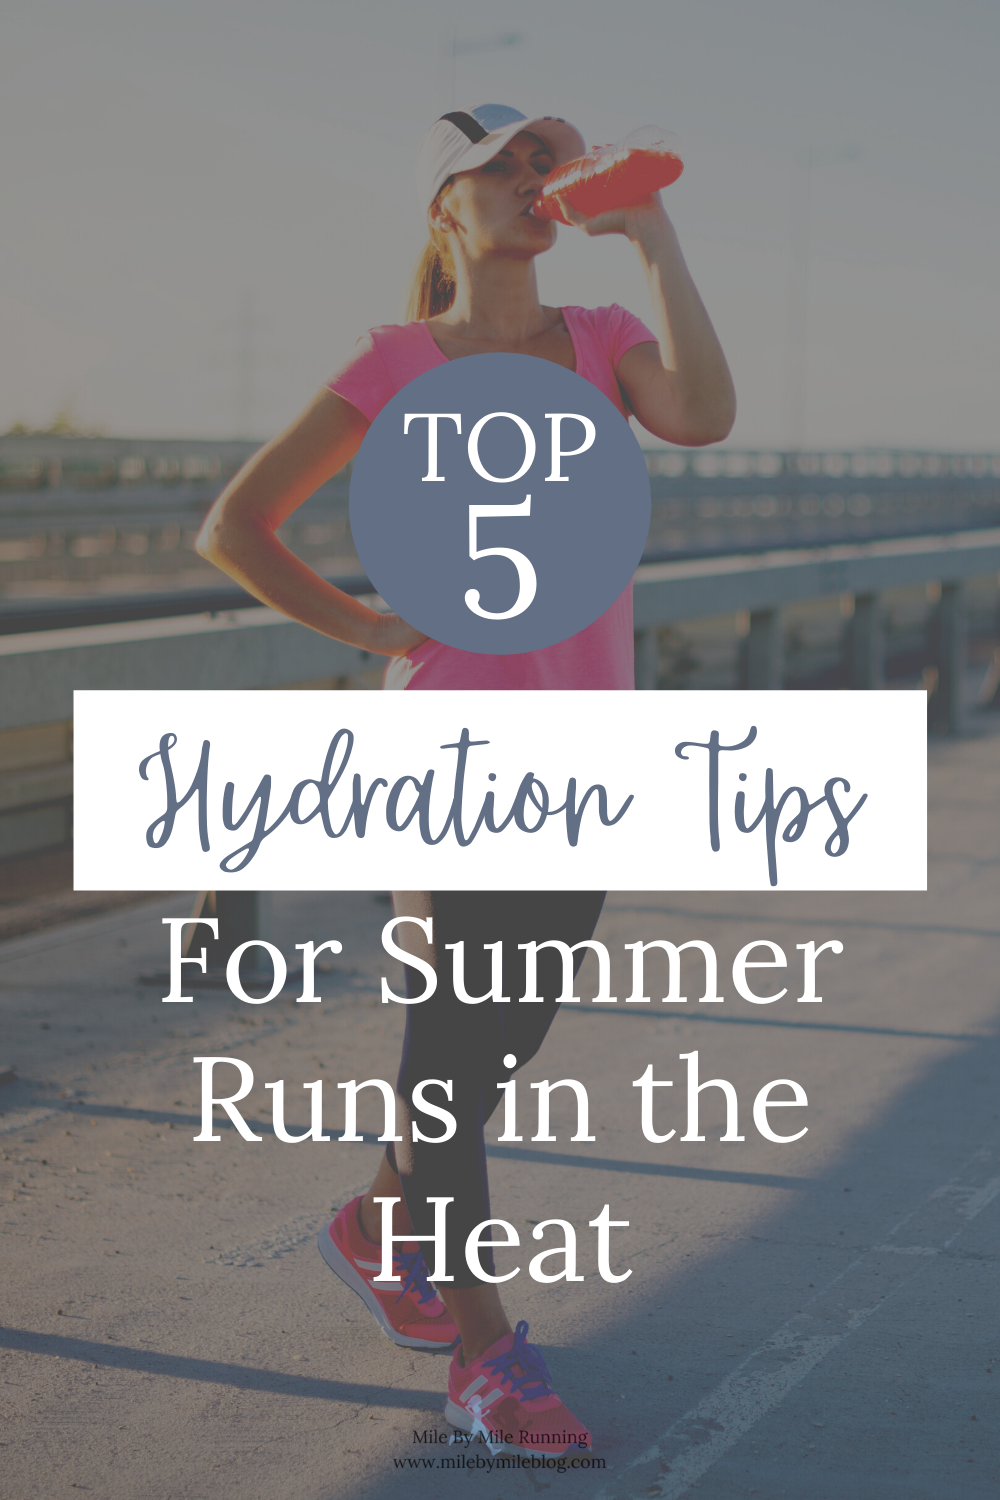 Summer is here, which means there is plenty of sun, humidity, and sweat. It can feel like it's impossible to beat the heat. Staying hydrated is one of the most important factors related to running safely and successfully all summer long. Make sure you check out these top 5 hydration tips for hot summer runs in the heat!